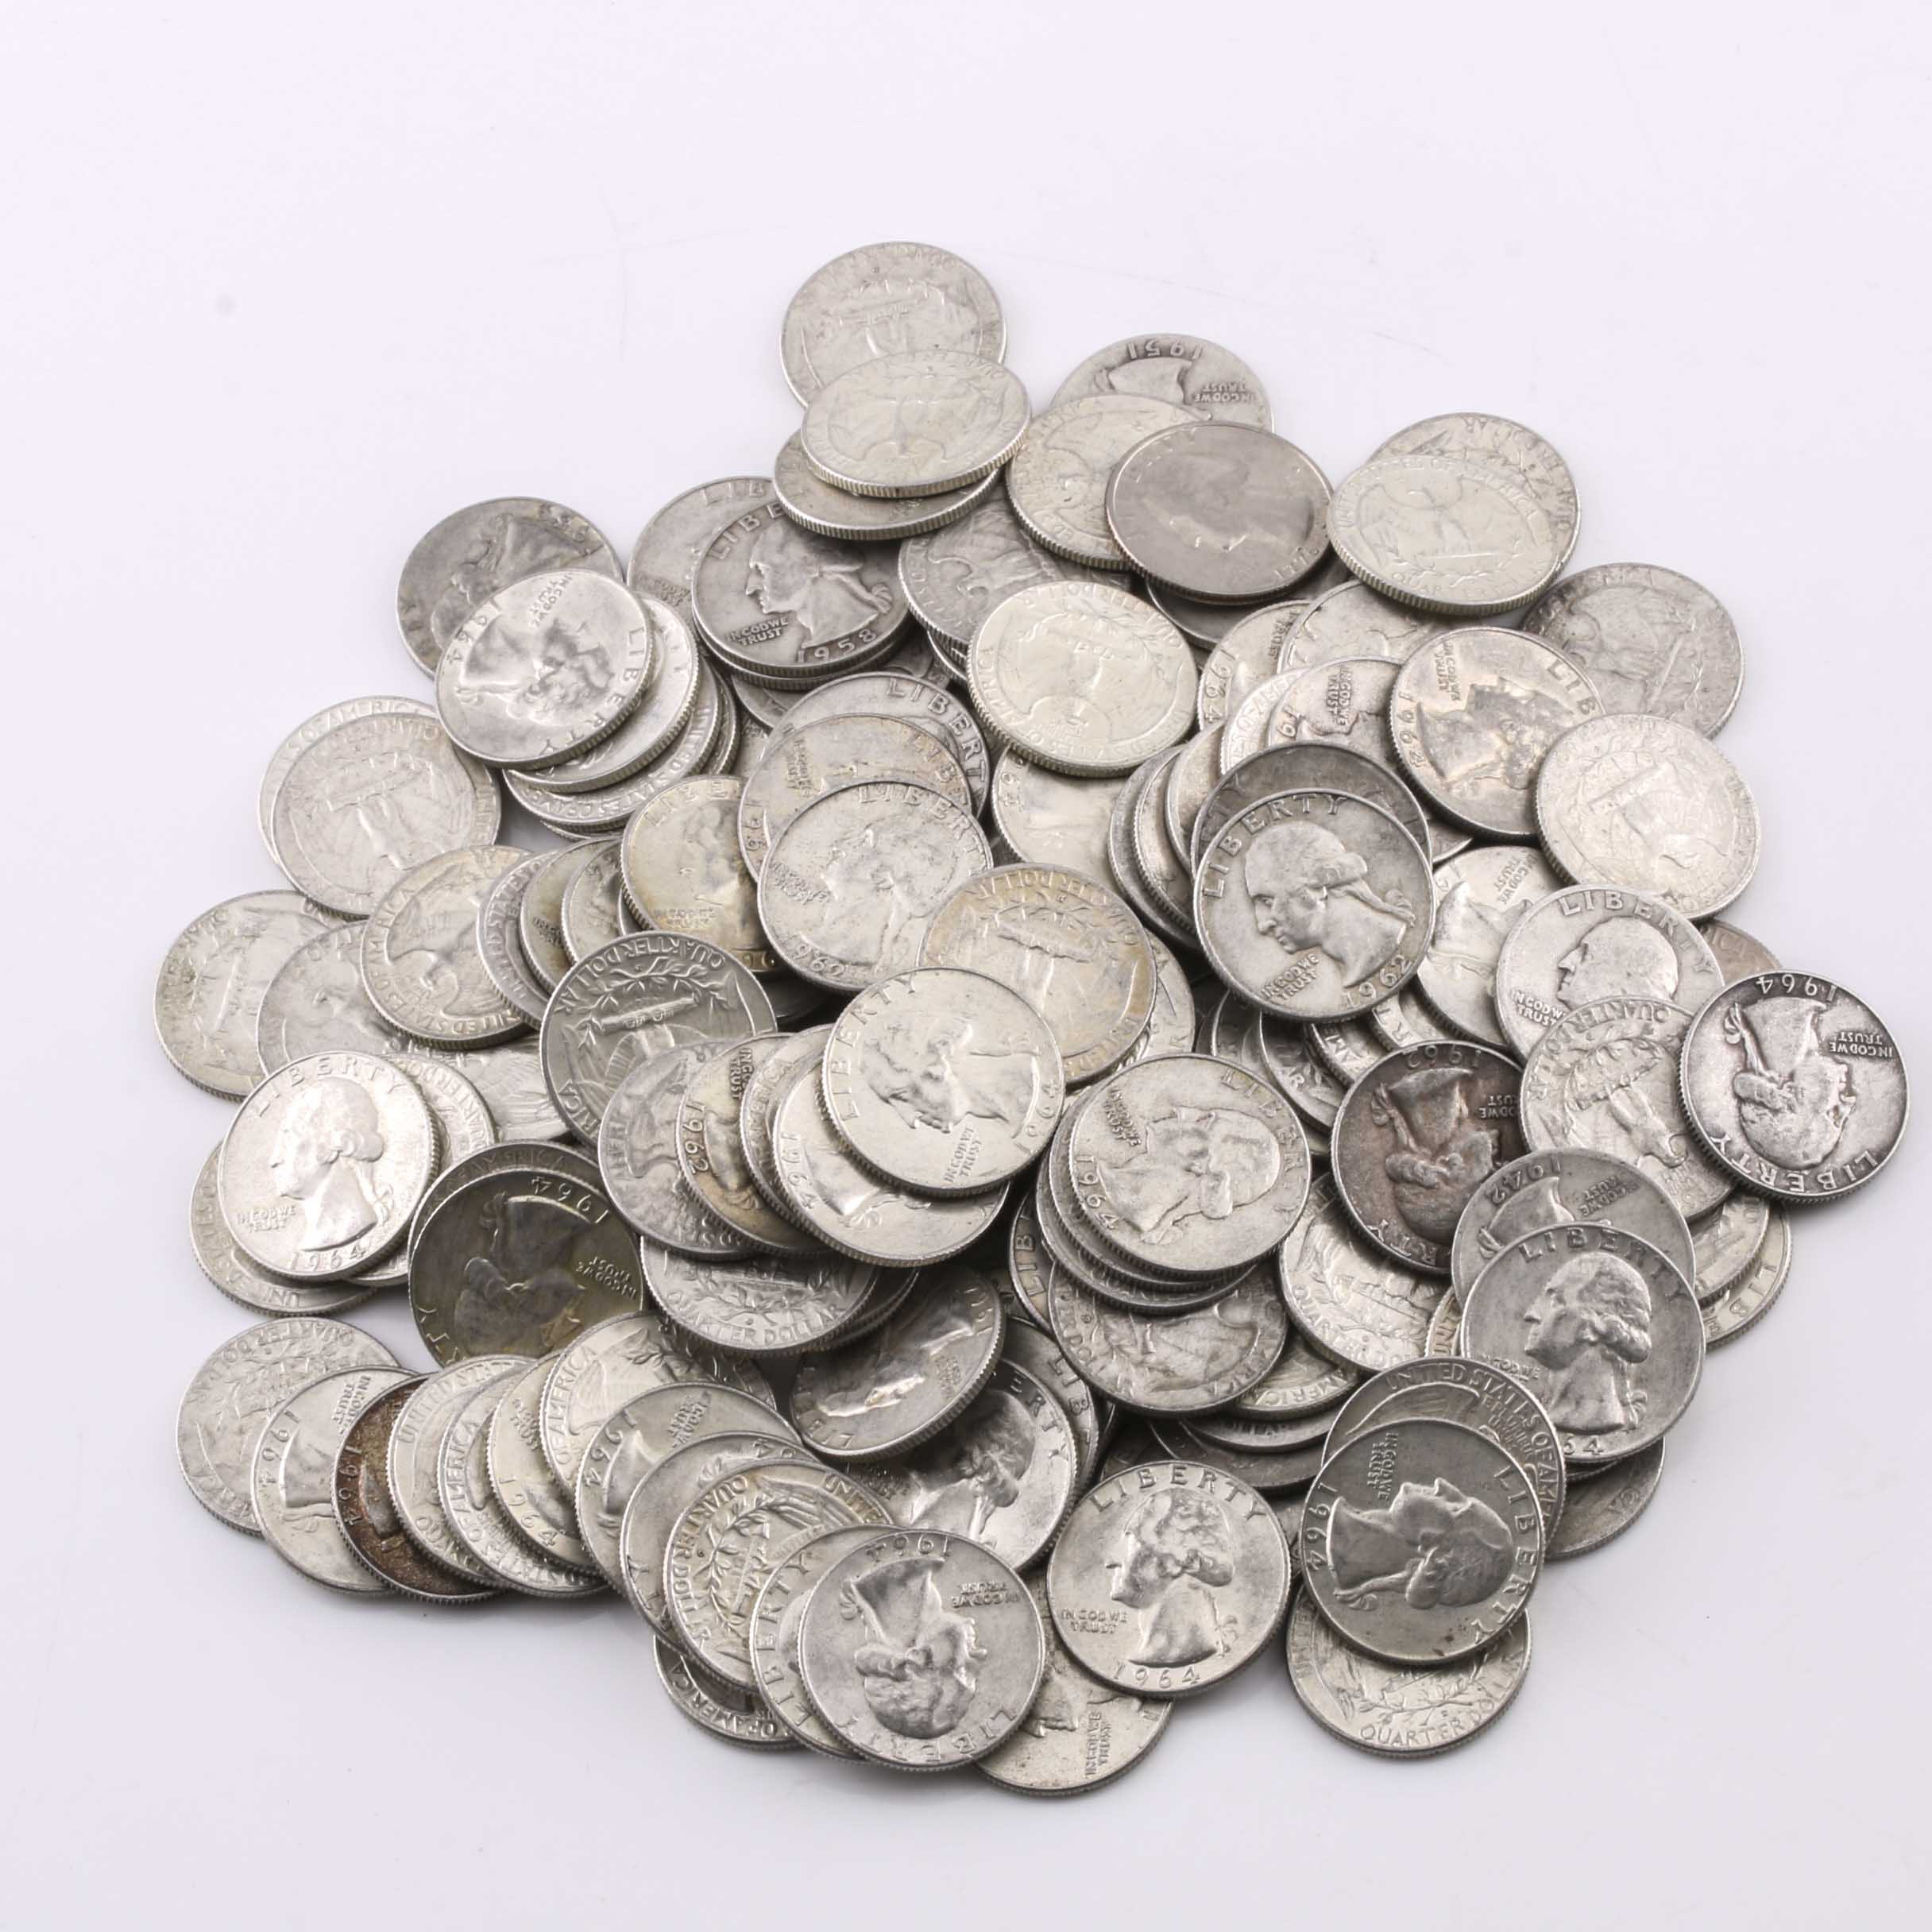 149 Washington Silver Quarters